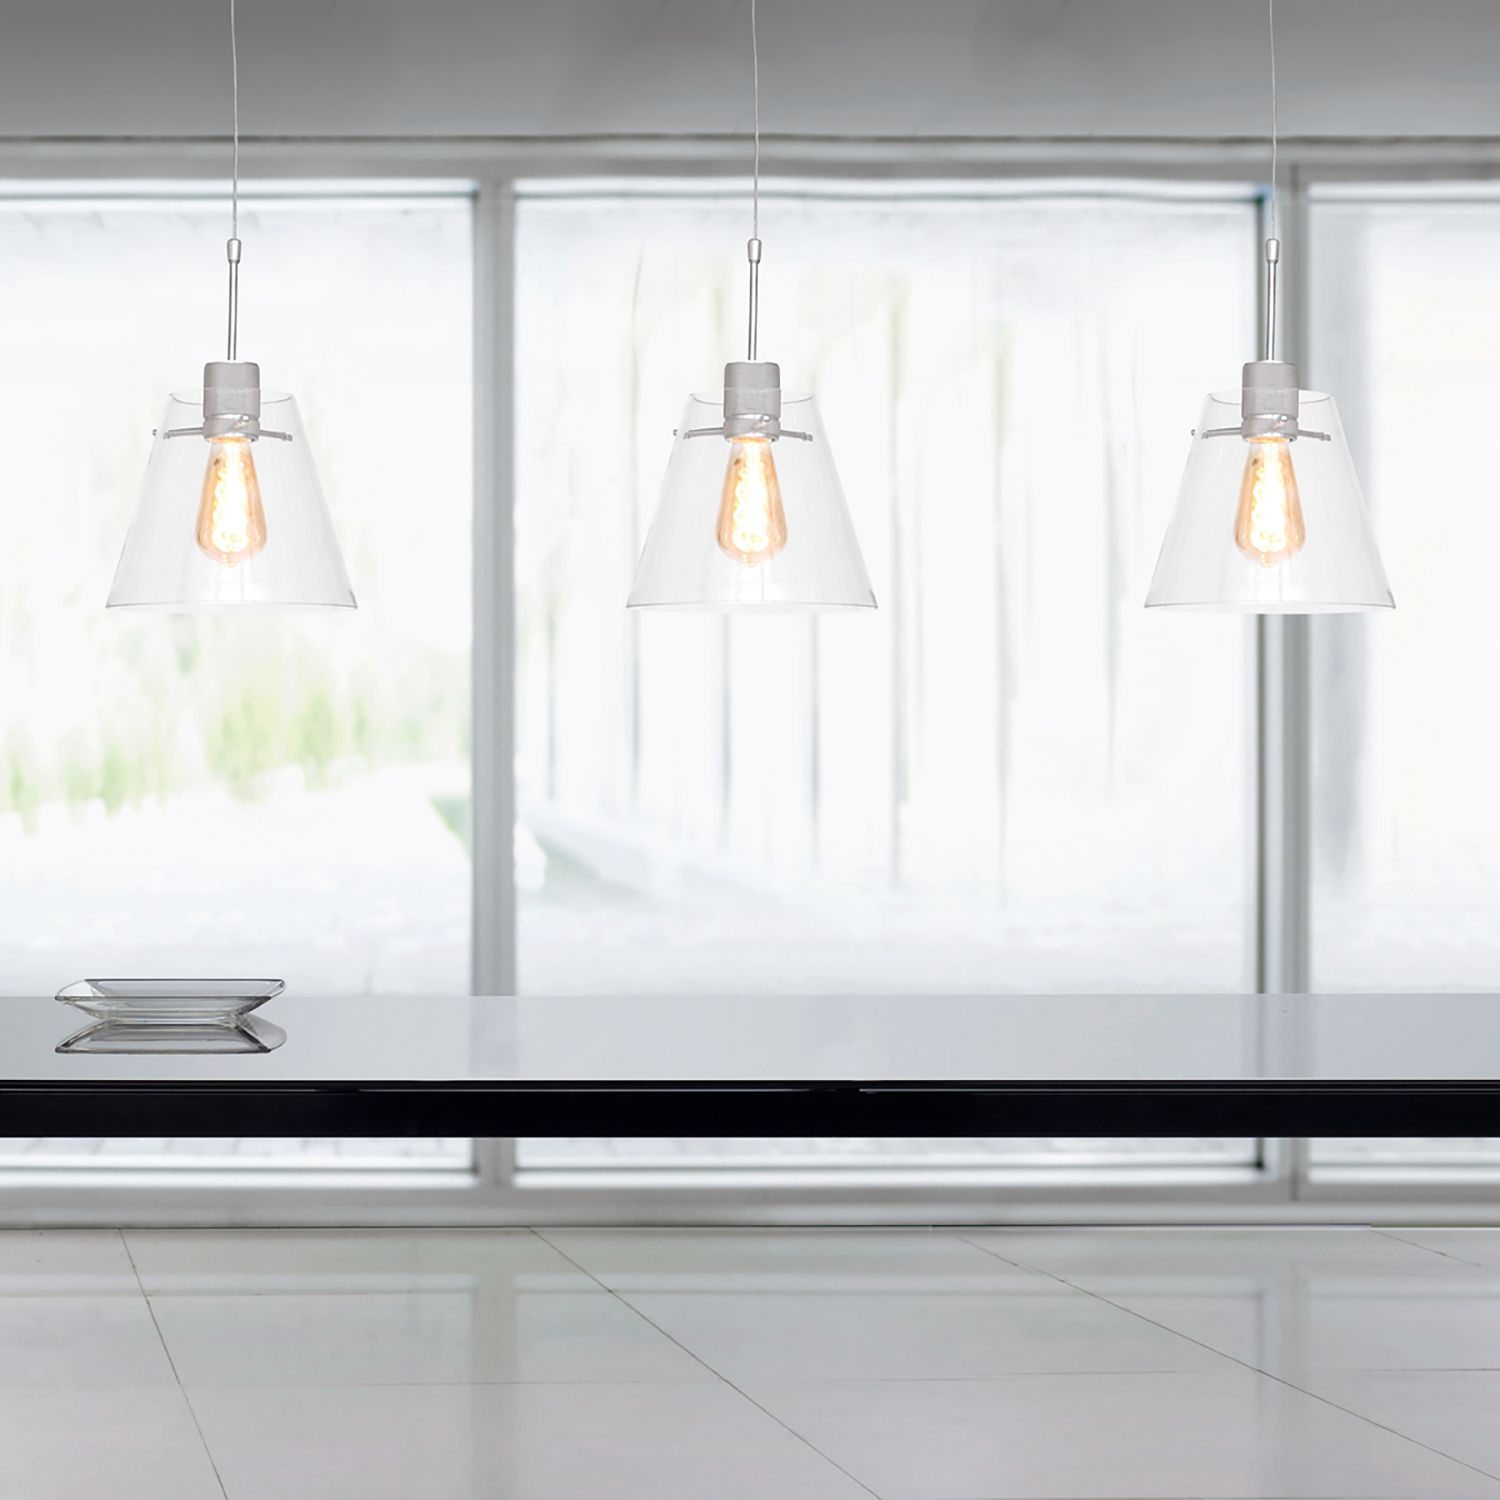 Suspension Glass Cloak I